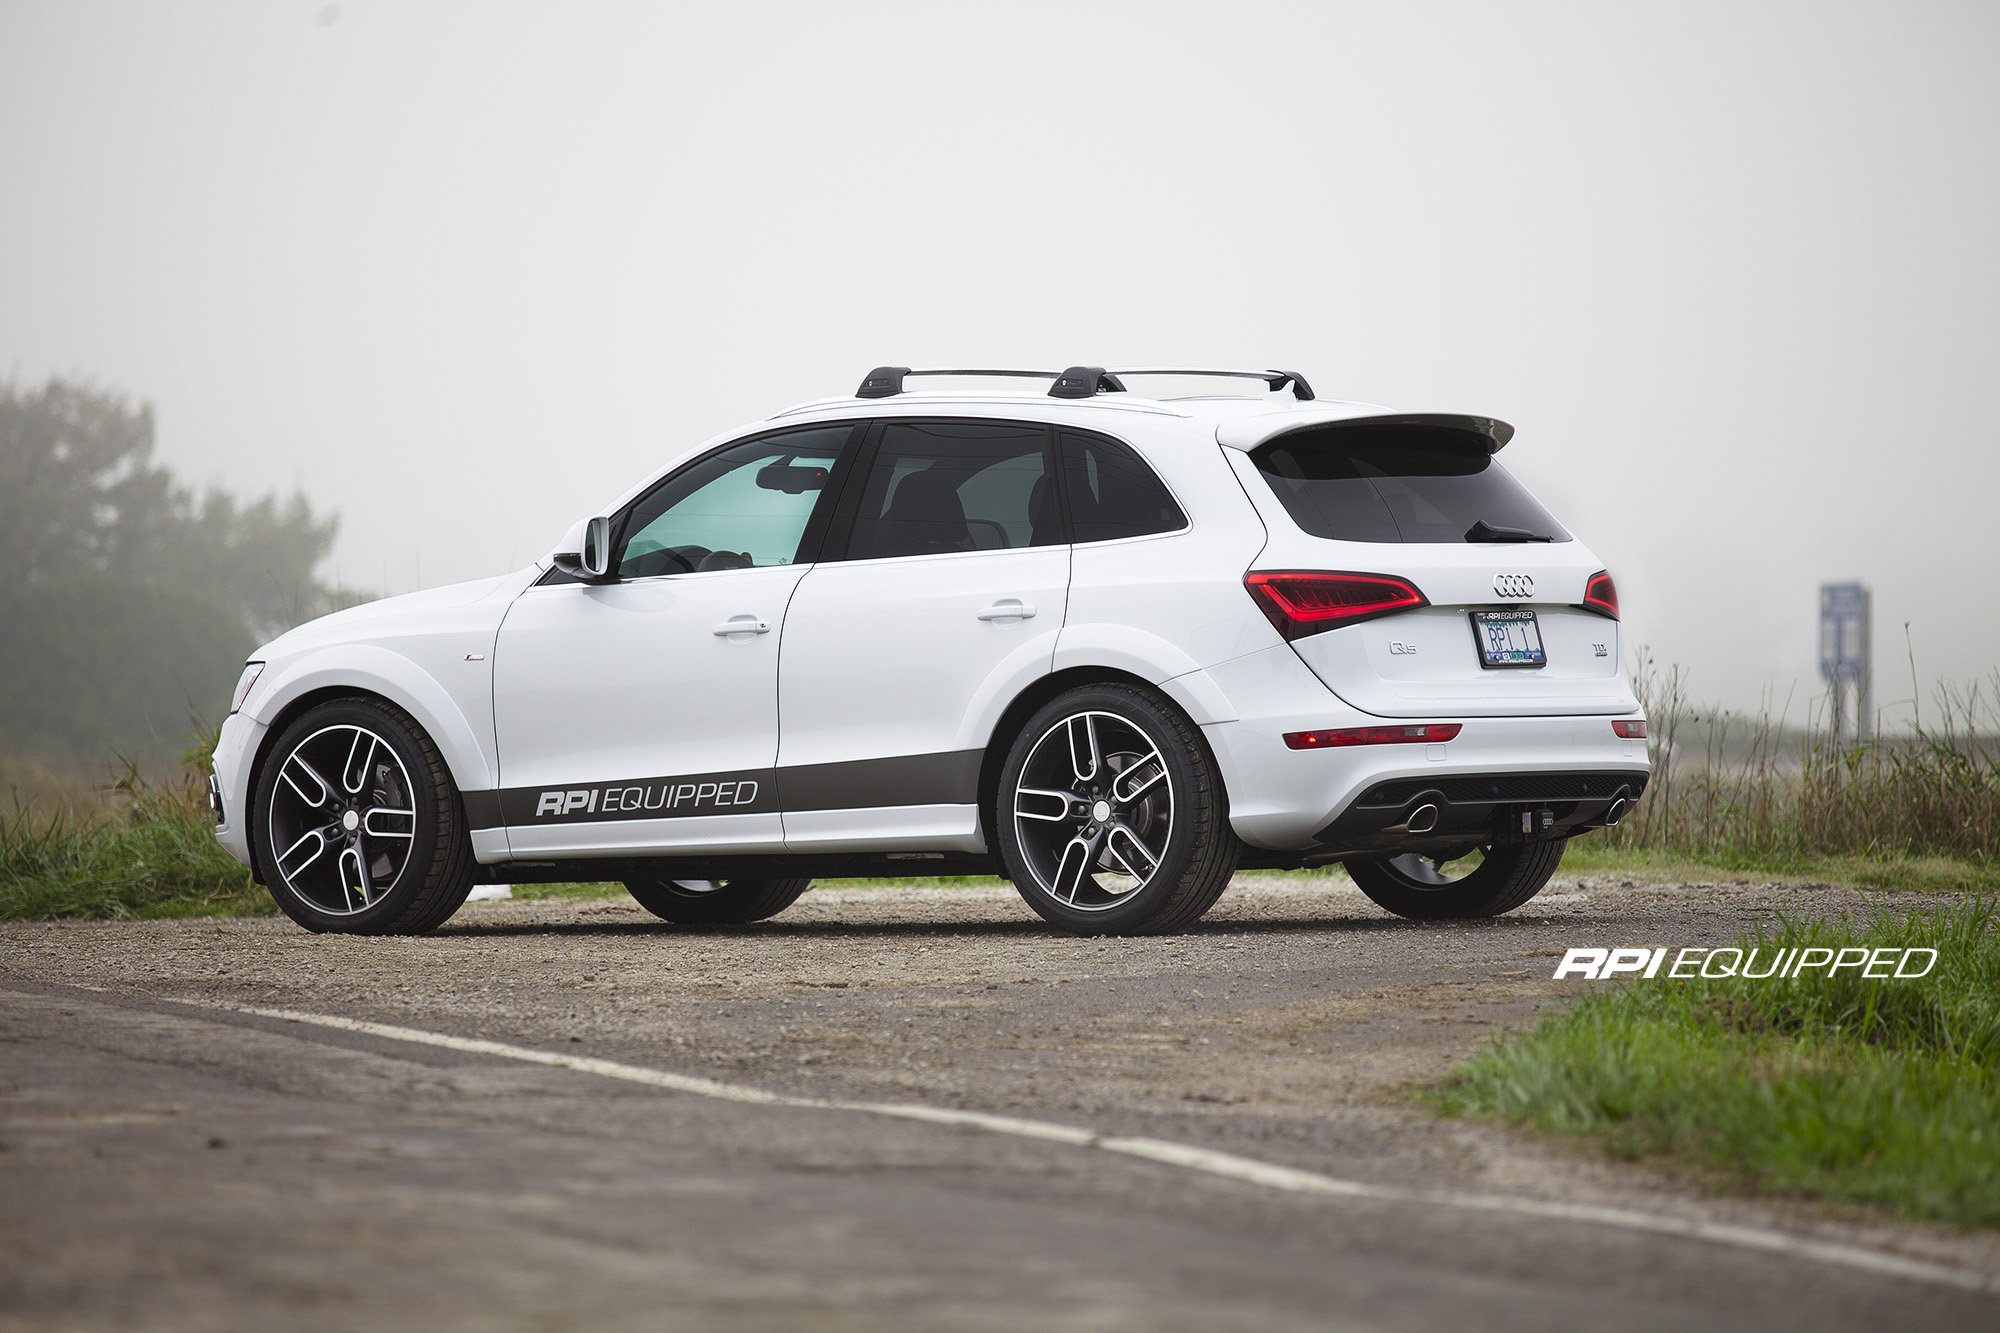 2016 Audi Q5 >> q5-decal_1-tuning-5 | RPI Equipped!